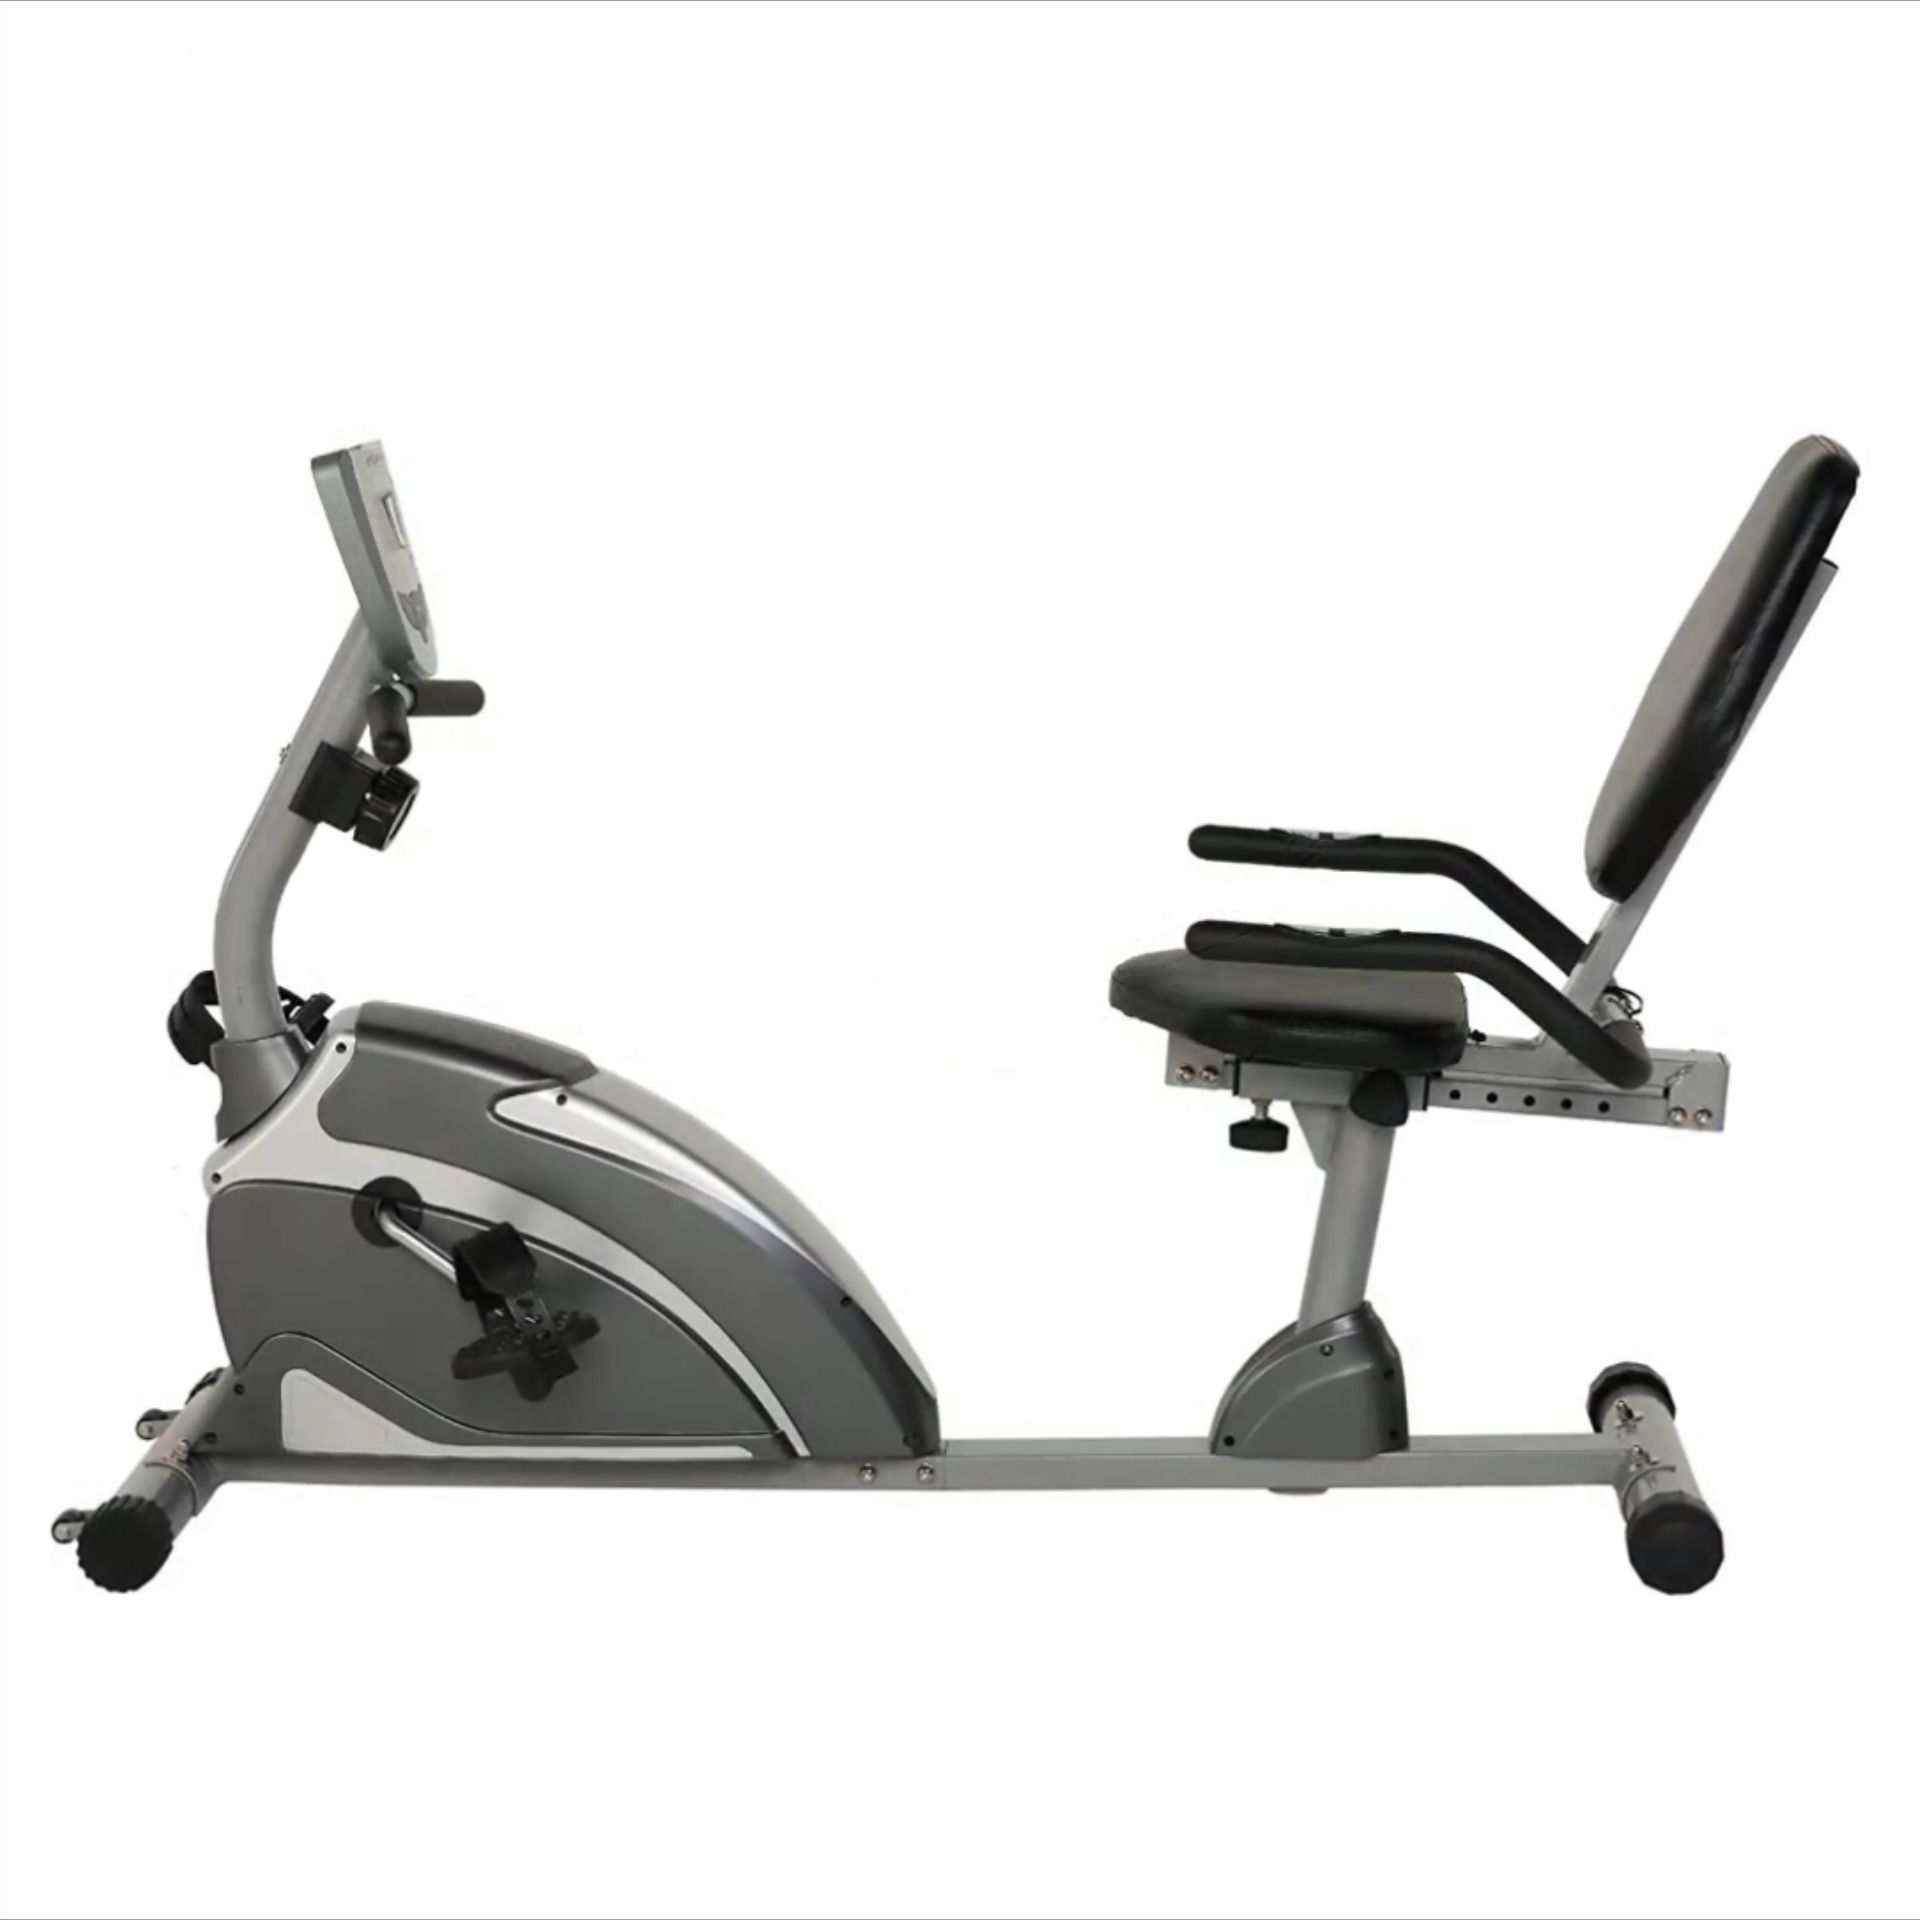 Nordictrack Gx 4 7 Reviews Marcy Exercise Stamina Magnetic